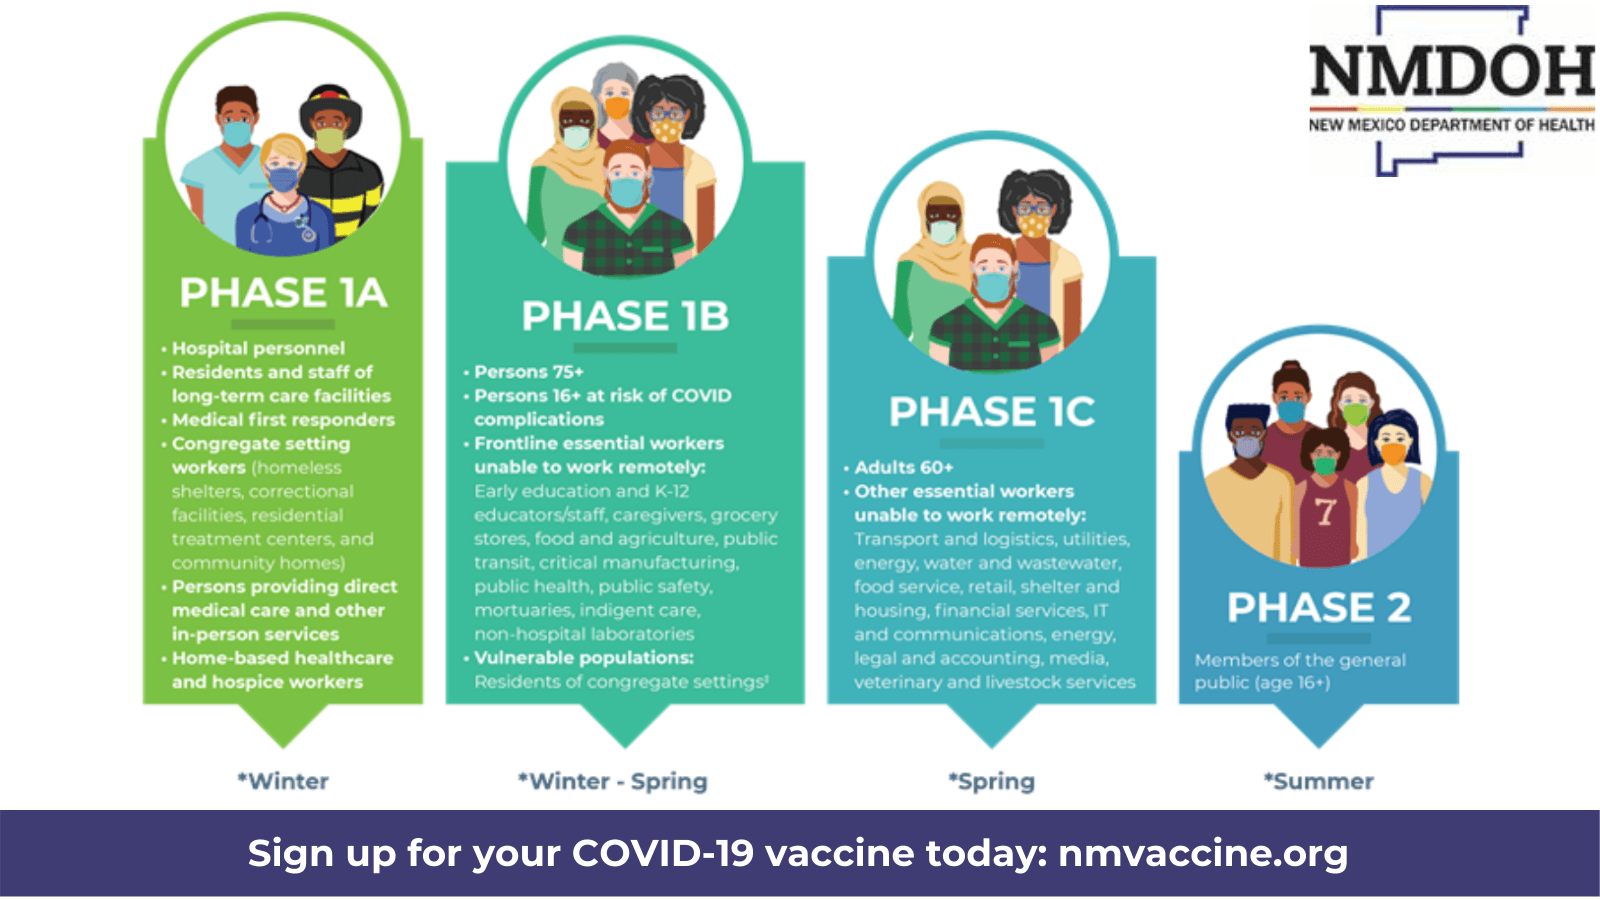 Covid Vaccine phased rollout